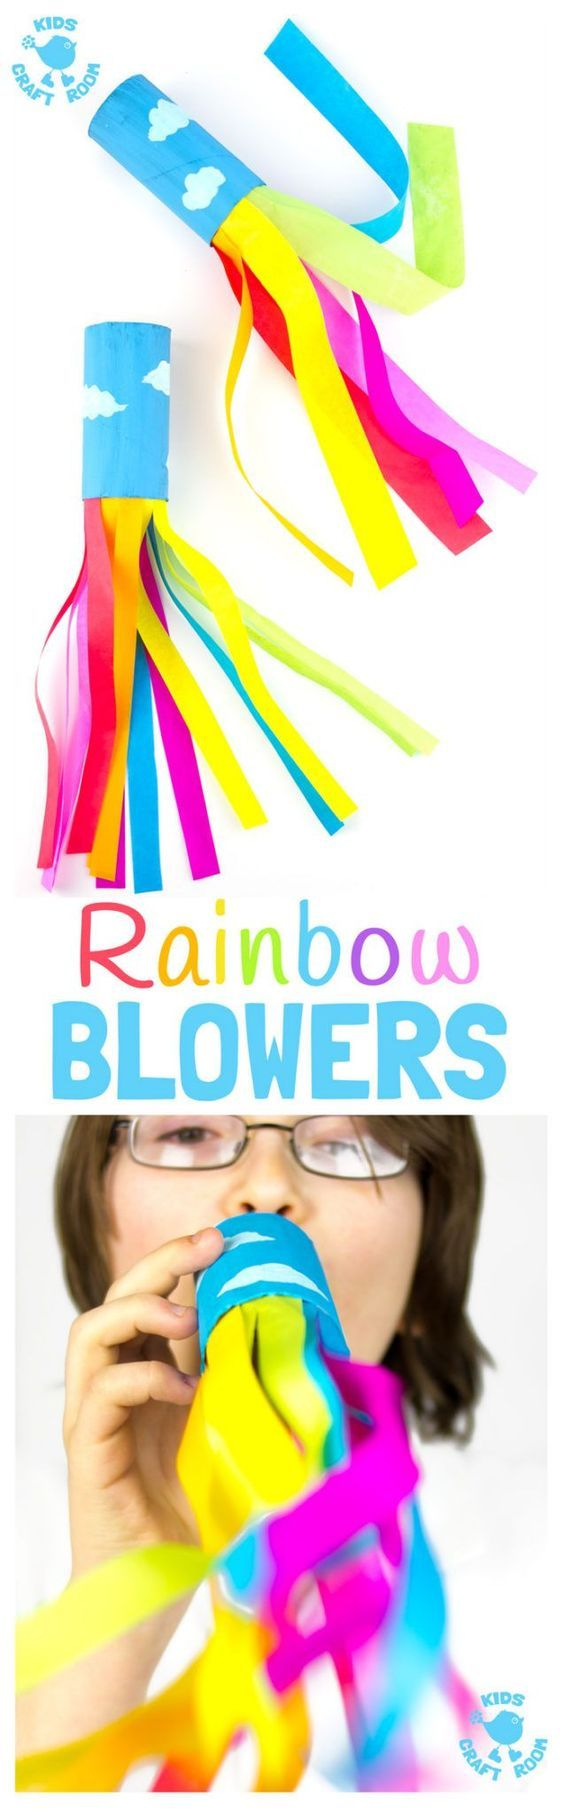 CARDBOARD TUBE RAINBOW BLOWERS are a colourful and fun kids craft! Kids love blowing this rainbow craft to see the streamers swoosh. A super TP roll St Patrick's Day craft or for a weather topic too.